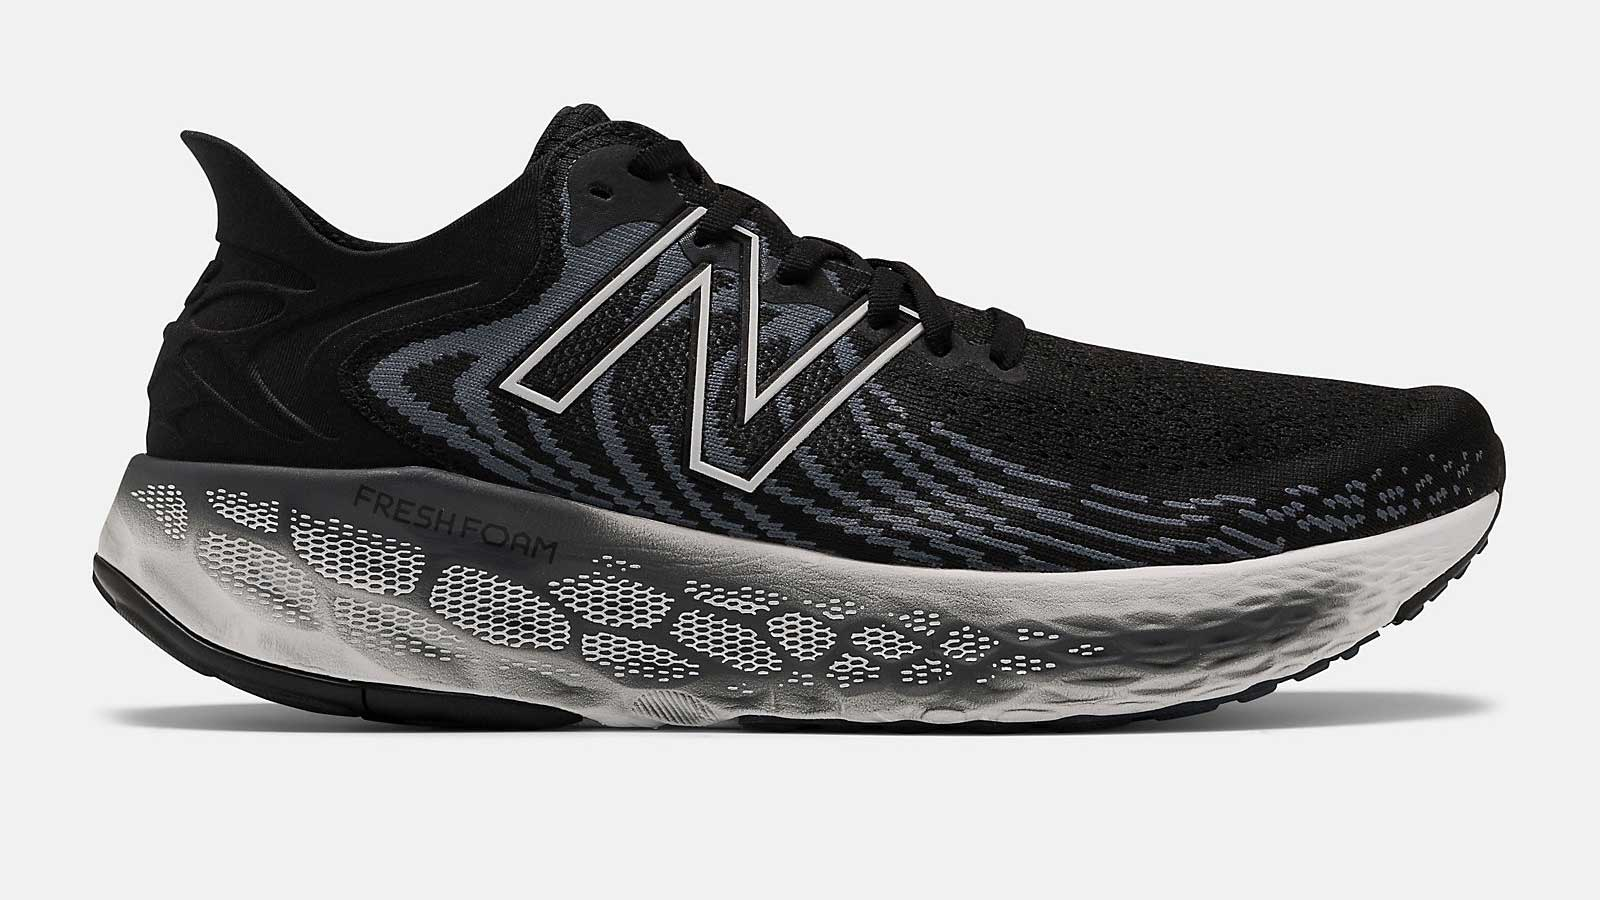 The New Balance 1080v11, a great new road shoe to consider when it's time to replace running shoes.